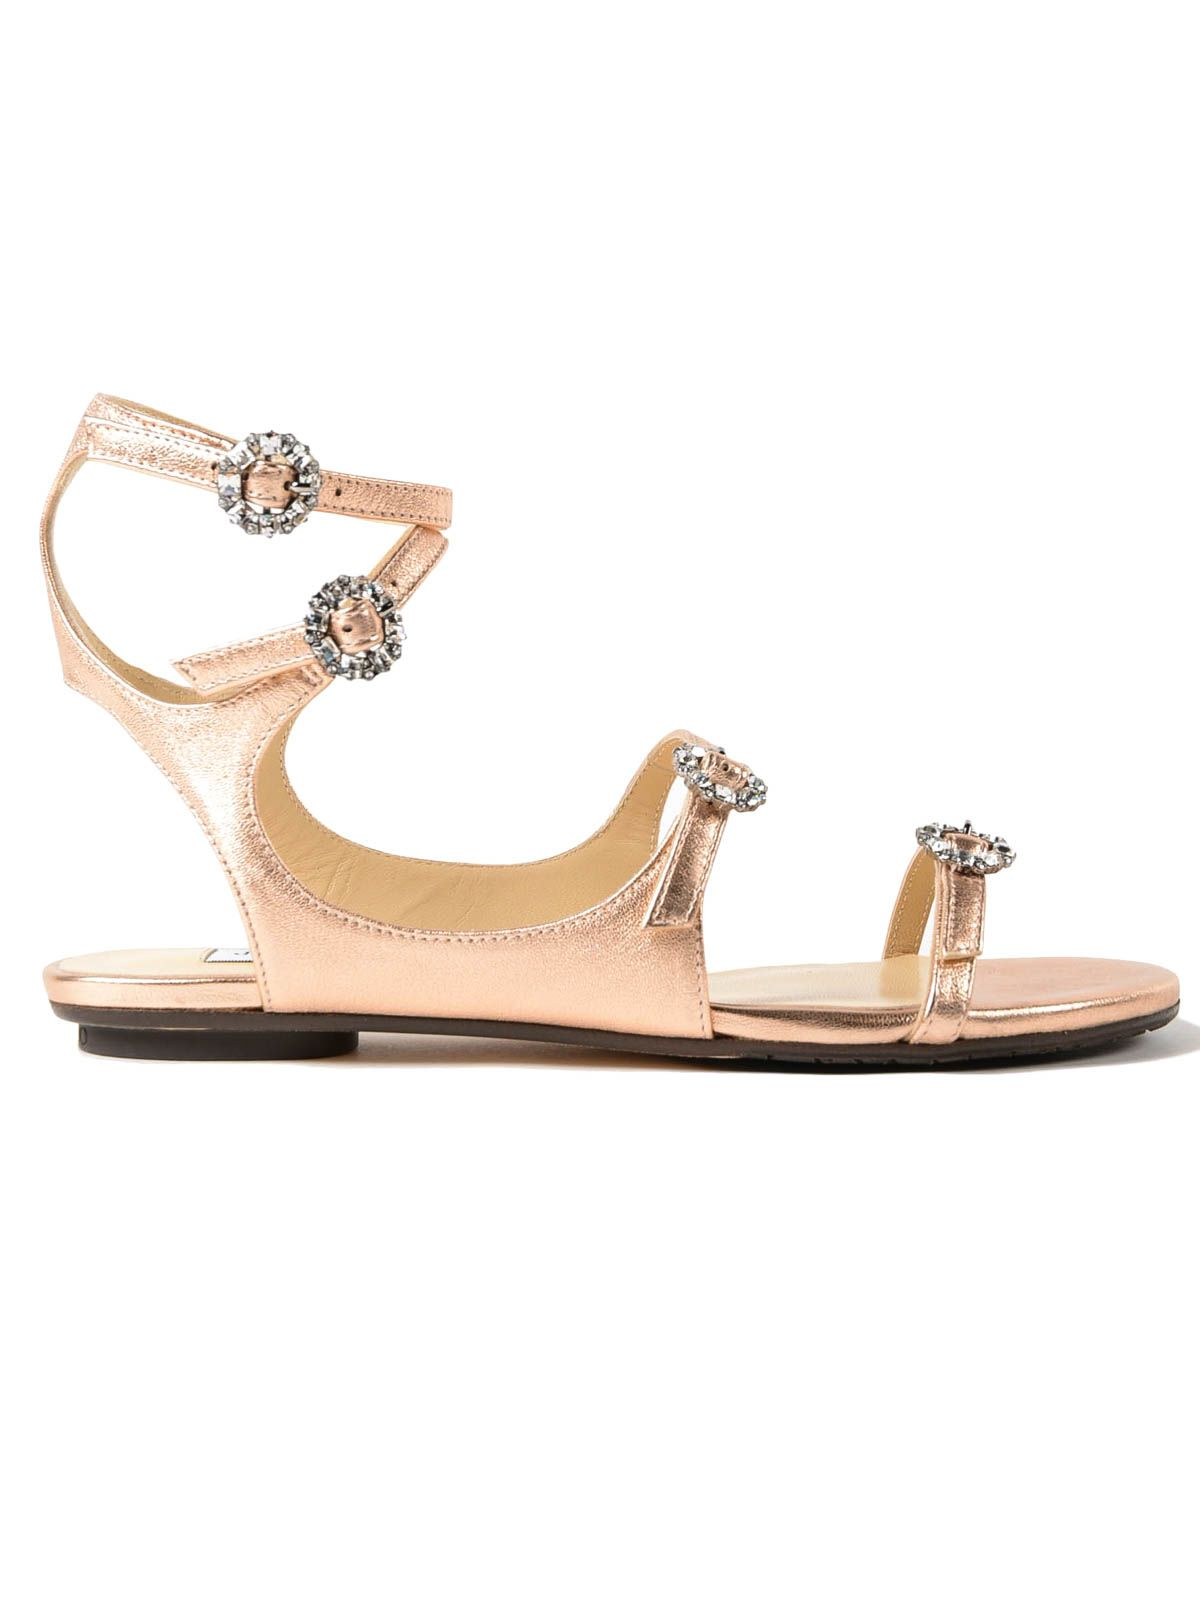 Jimmy Choo Metallic Nappa Crystal Buckle Sandal